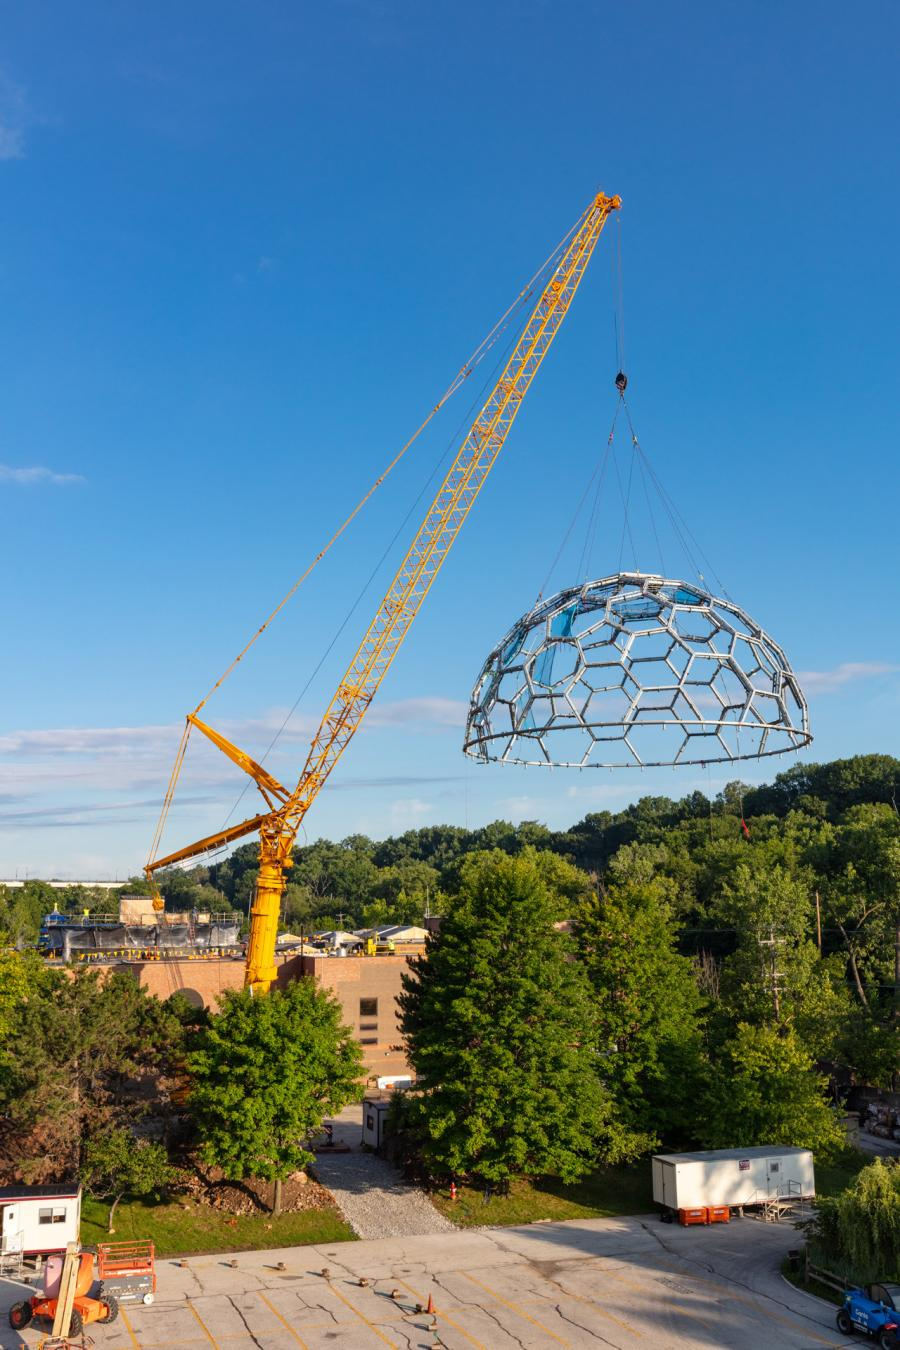 The new direction called for assembling the full dome structure on the ground, instead of in the air. Finished, the new, pre-fab metal dome is 36 ft. tall and 73 ft. in diameter. It weighs 77,000 lbs.